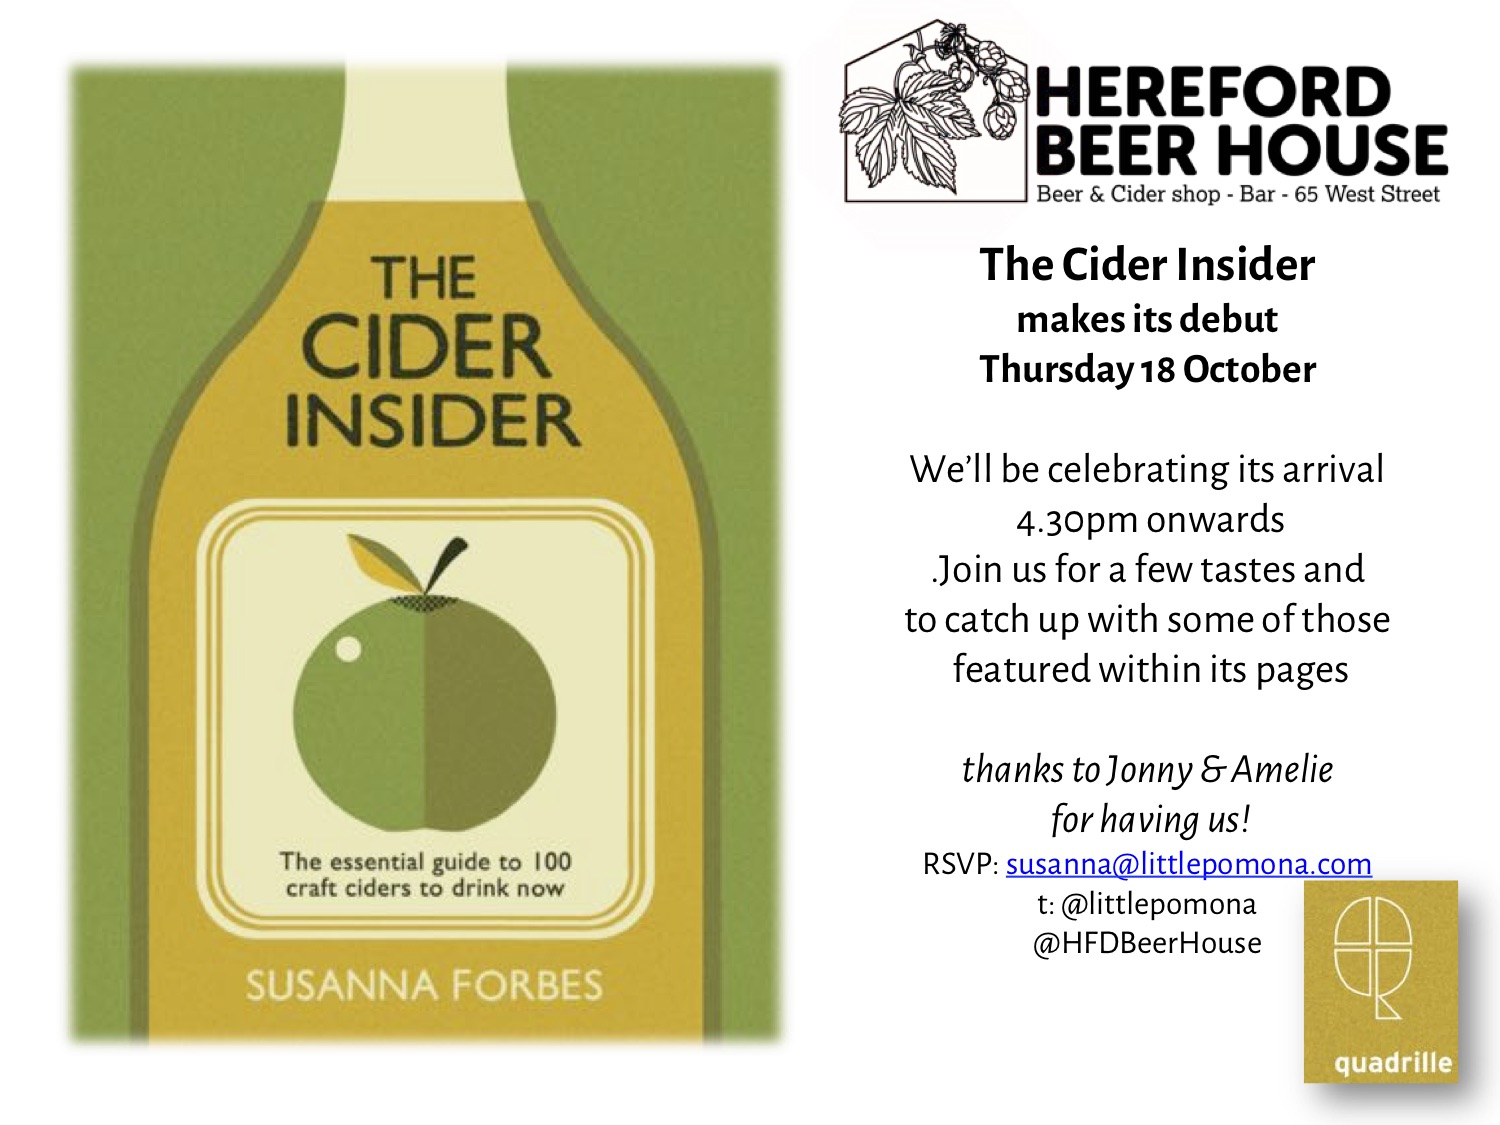 Head down to the Beer House in Hereford on the 18th October 2018 to see the book and get some tasting!